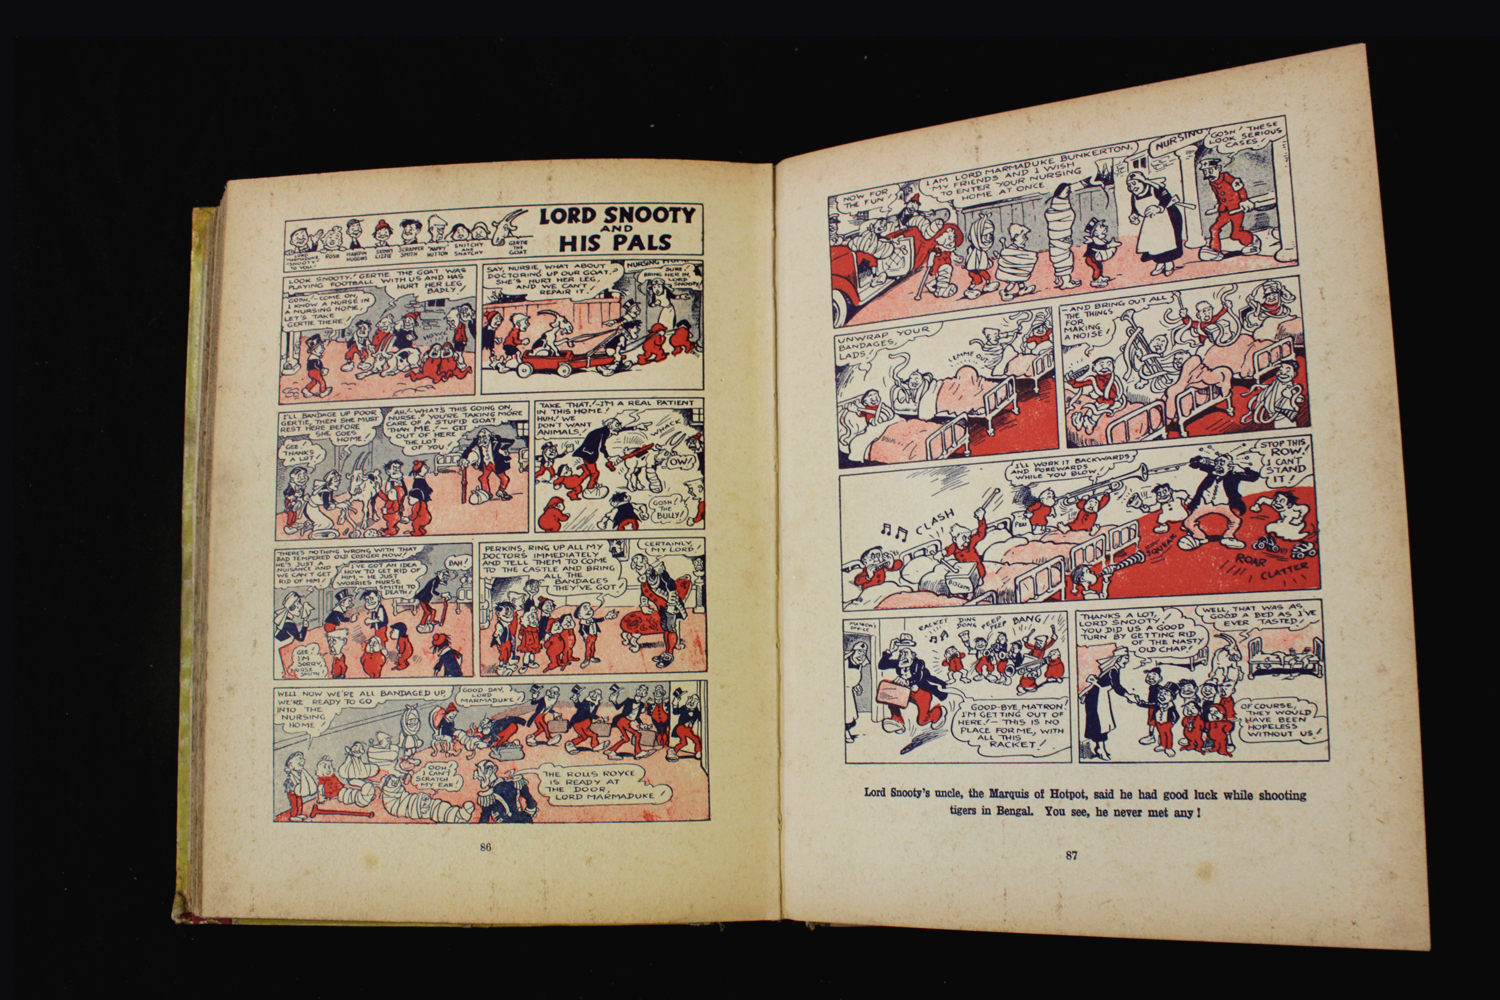 THE BEANO BOOK [No 1 Annual for 1940], London, Manchester and Dundee, D C Thomson & Co, [1939], 128p - Image 7 of 16